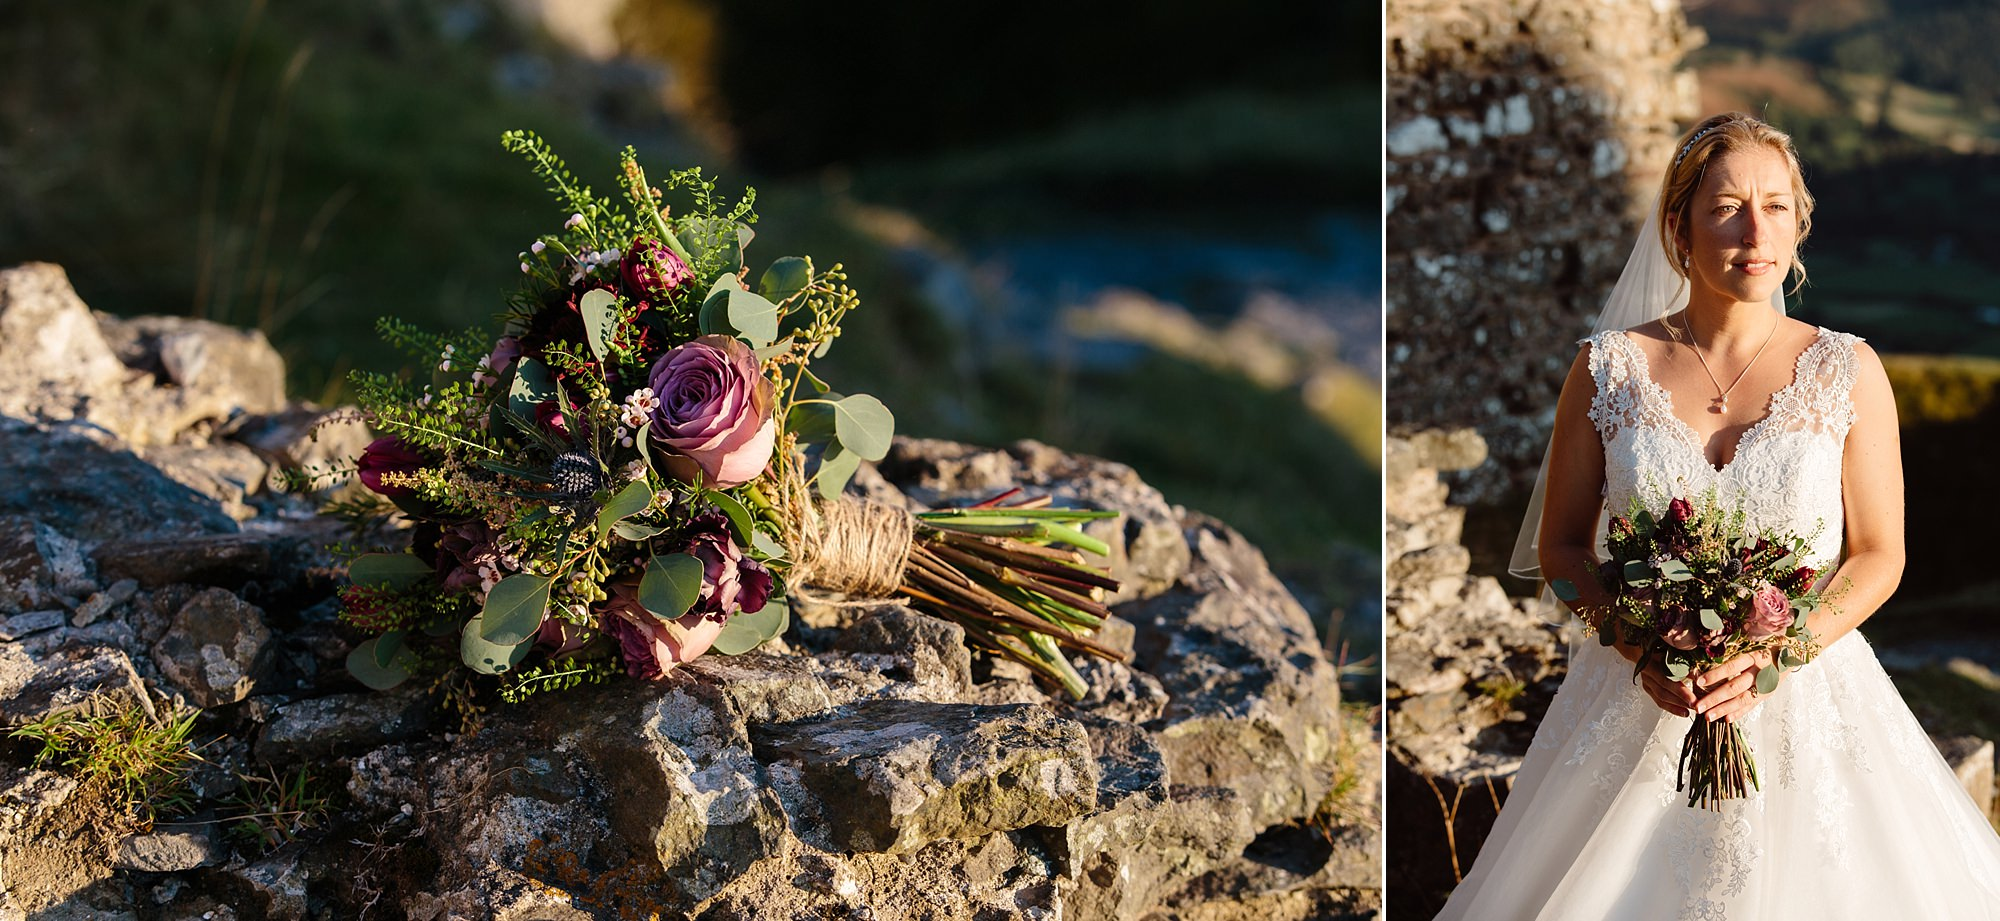 Castell dinas bran wedding photography portrait of bride with her bouquet